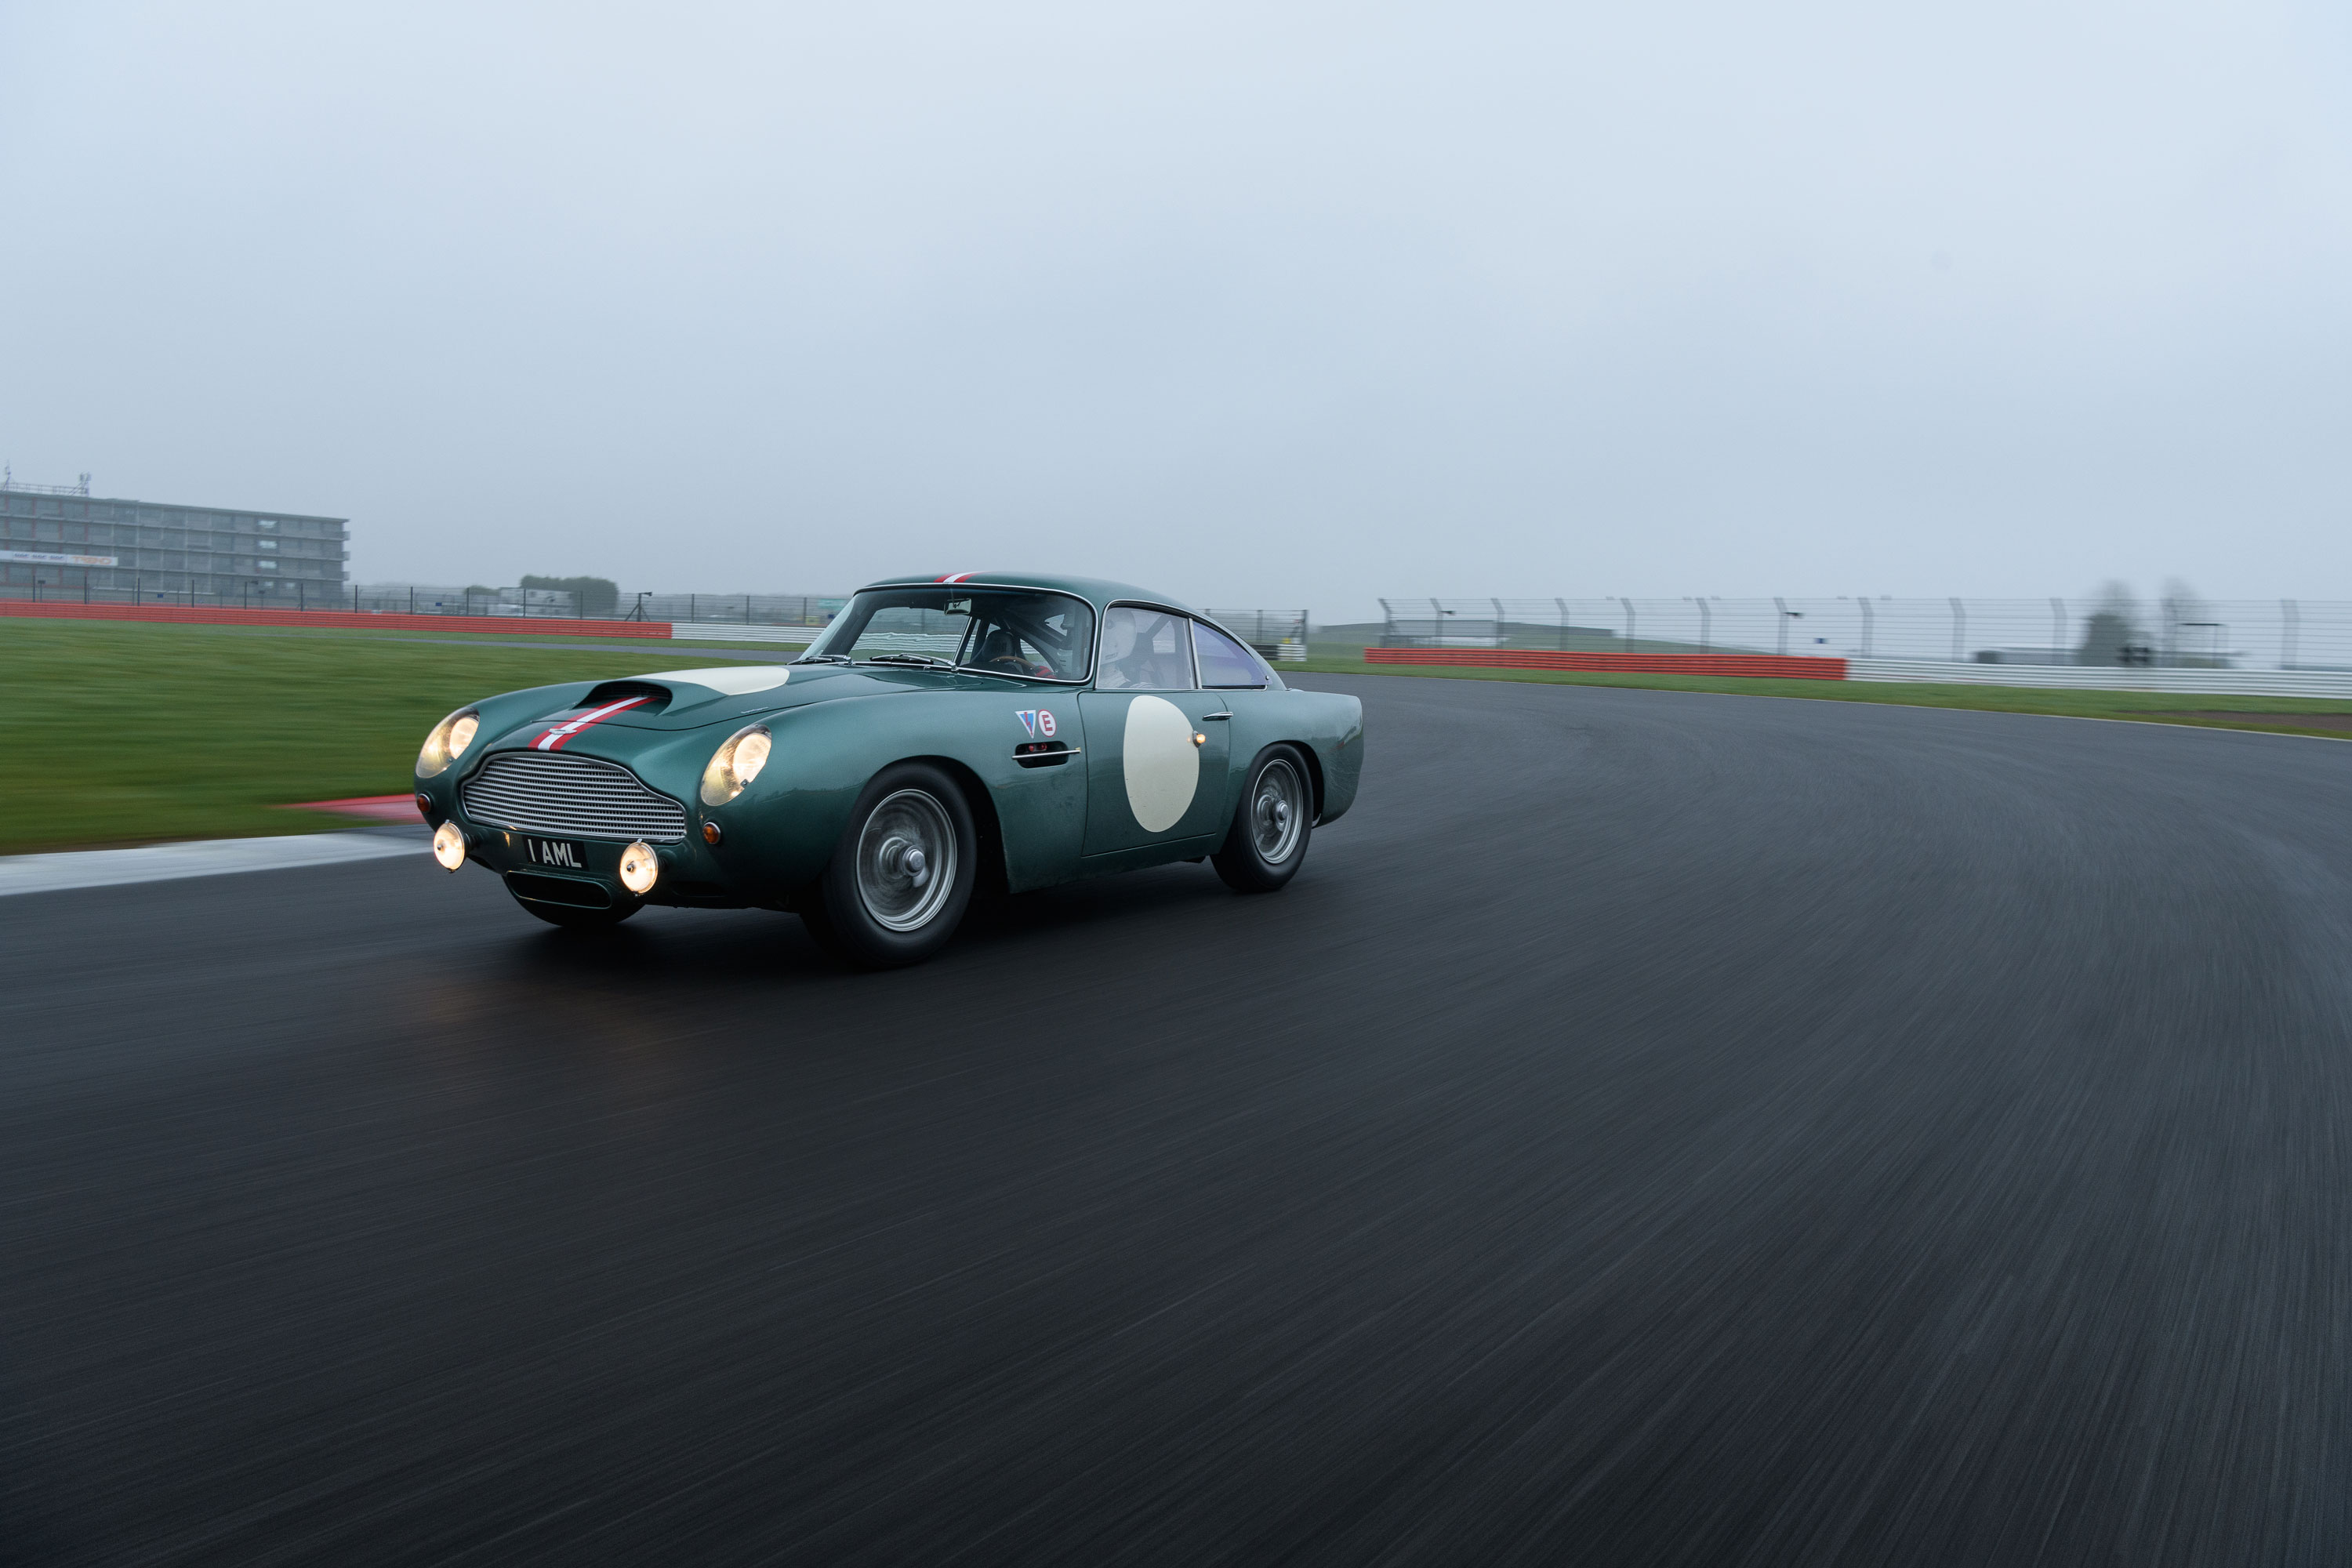 1959 Aston Martin DB4 GT banking right on the track